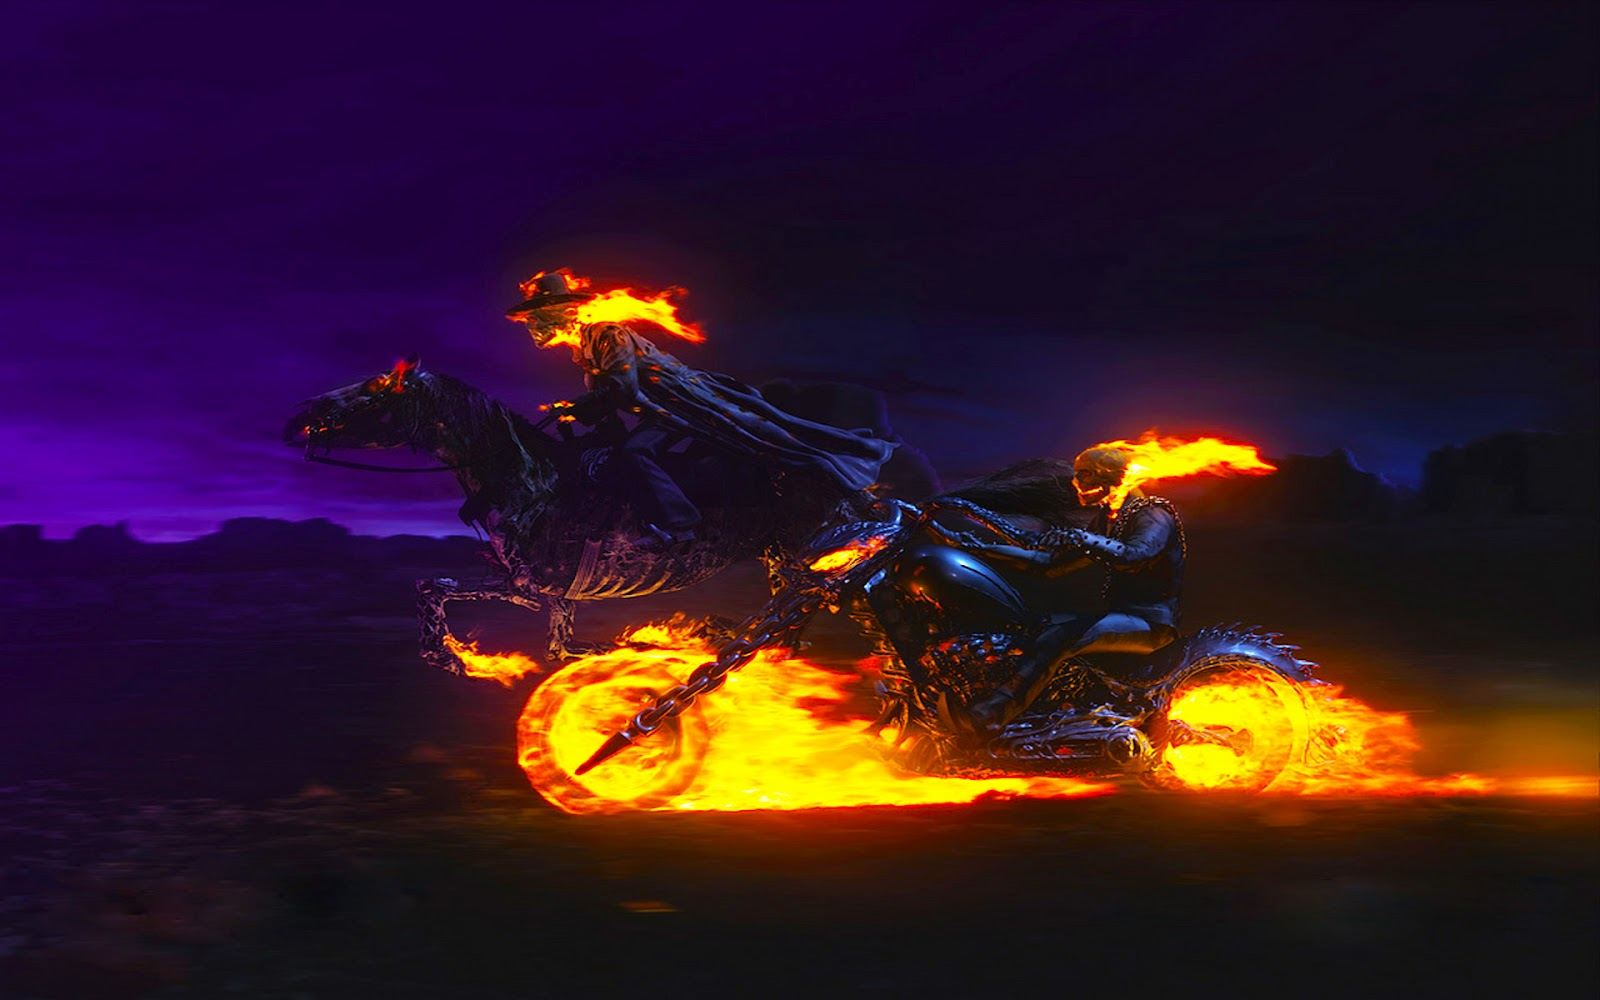 Wallpaper Movie   Ghost Rider   For PC Impact Wallpapers 1600x1000